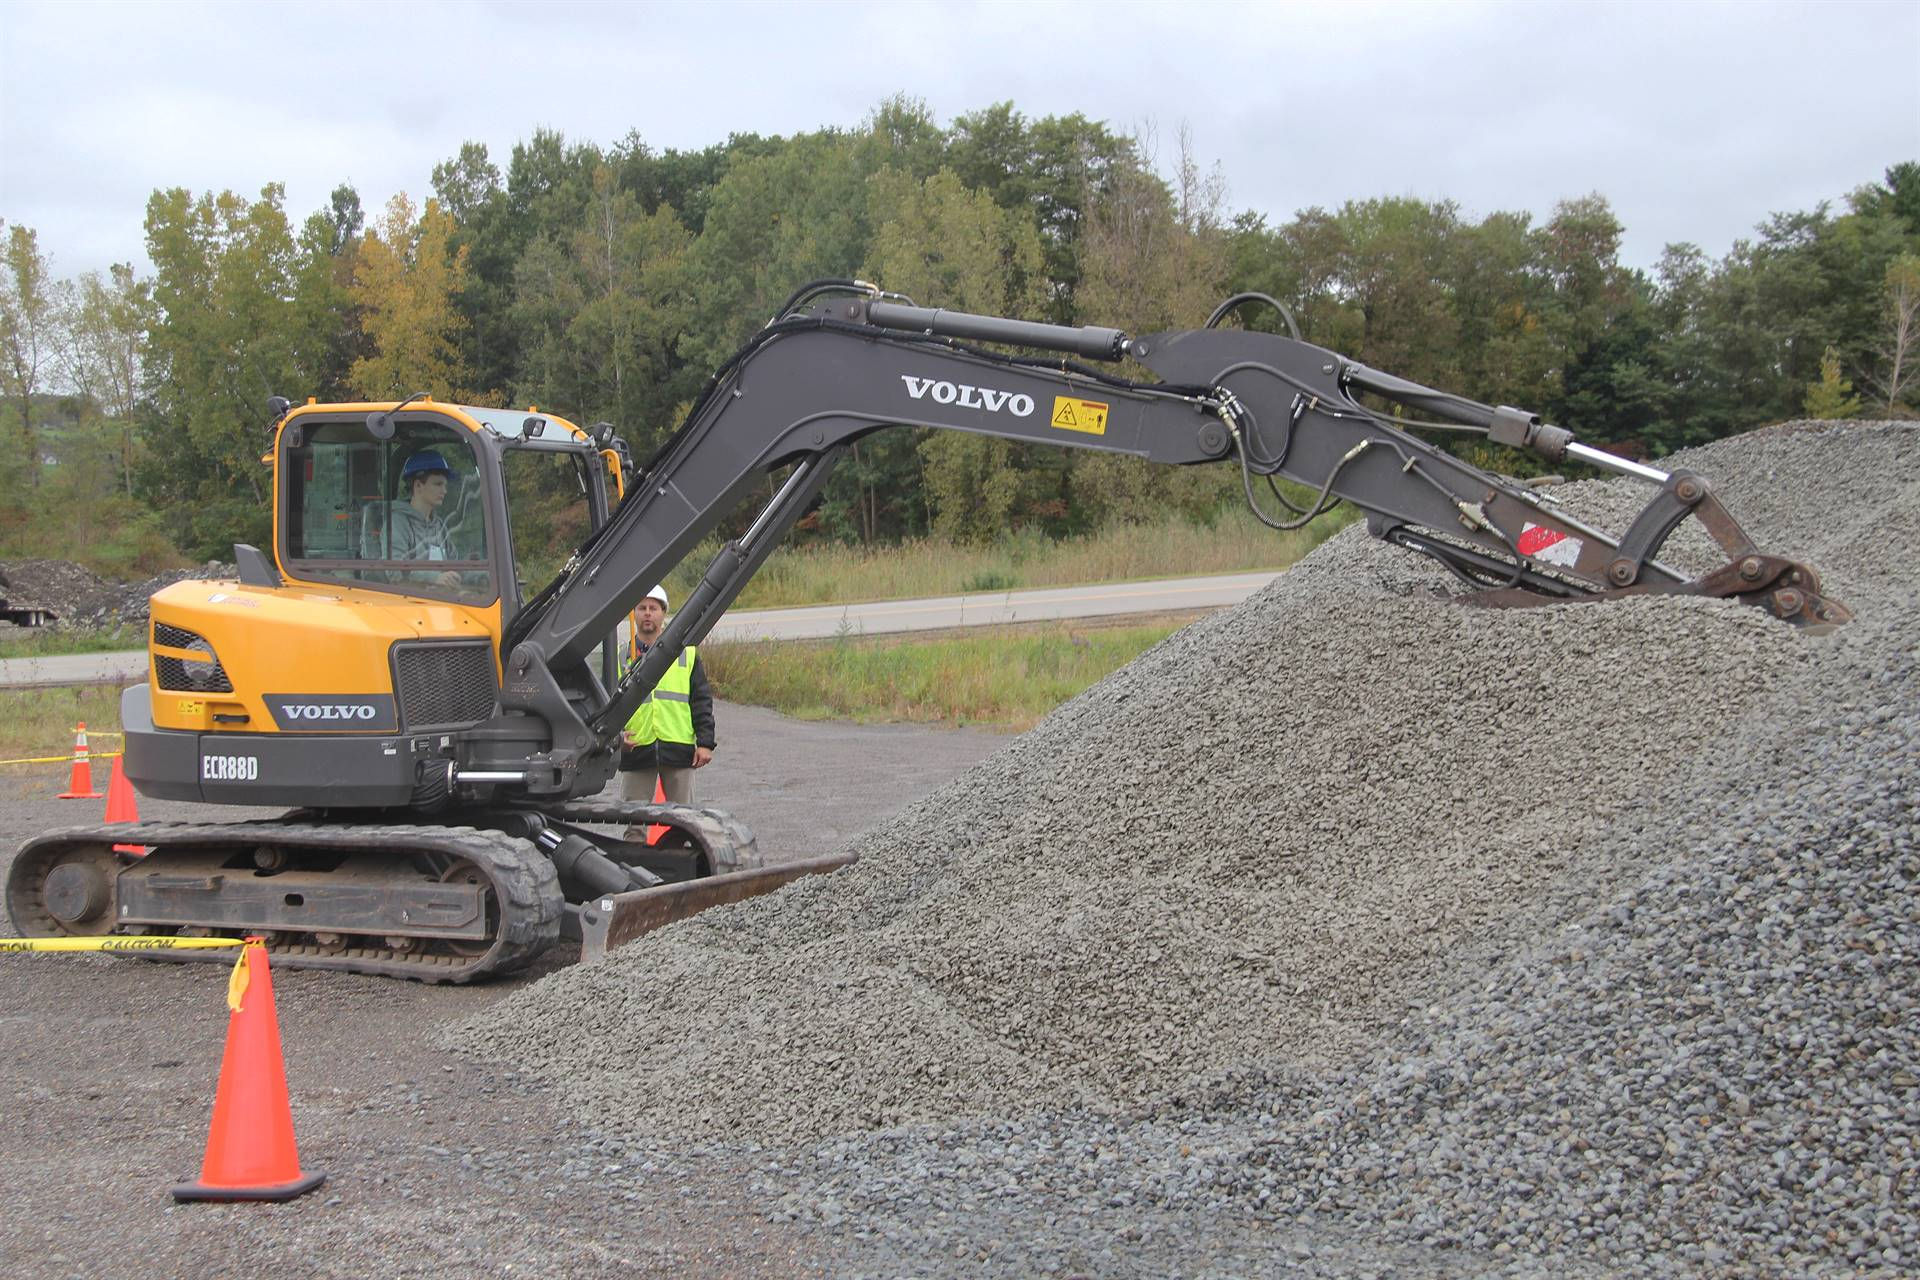 machinery digging into gravel